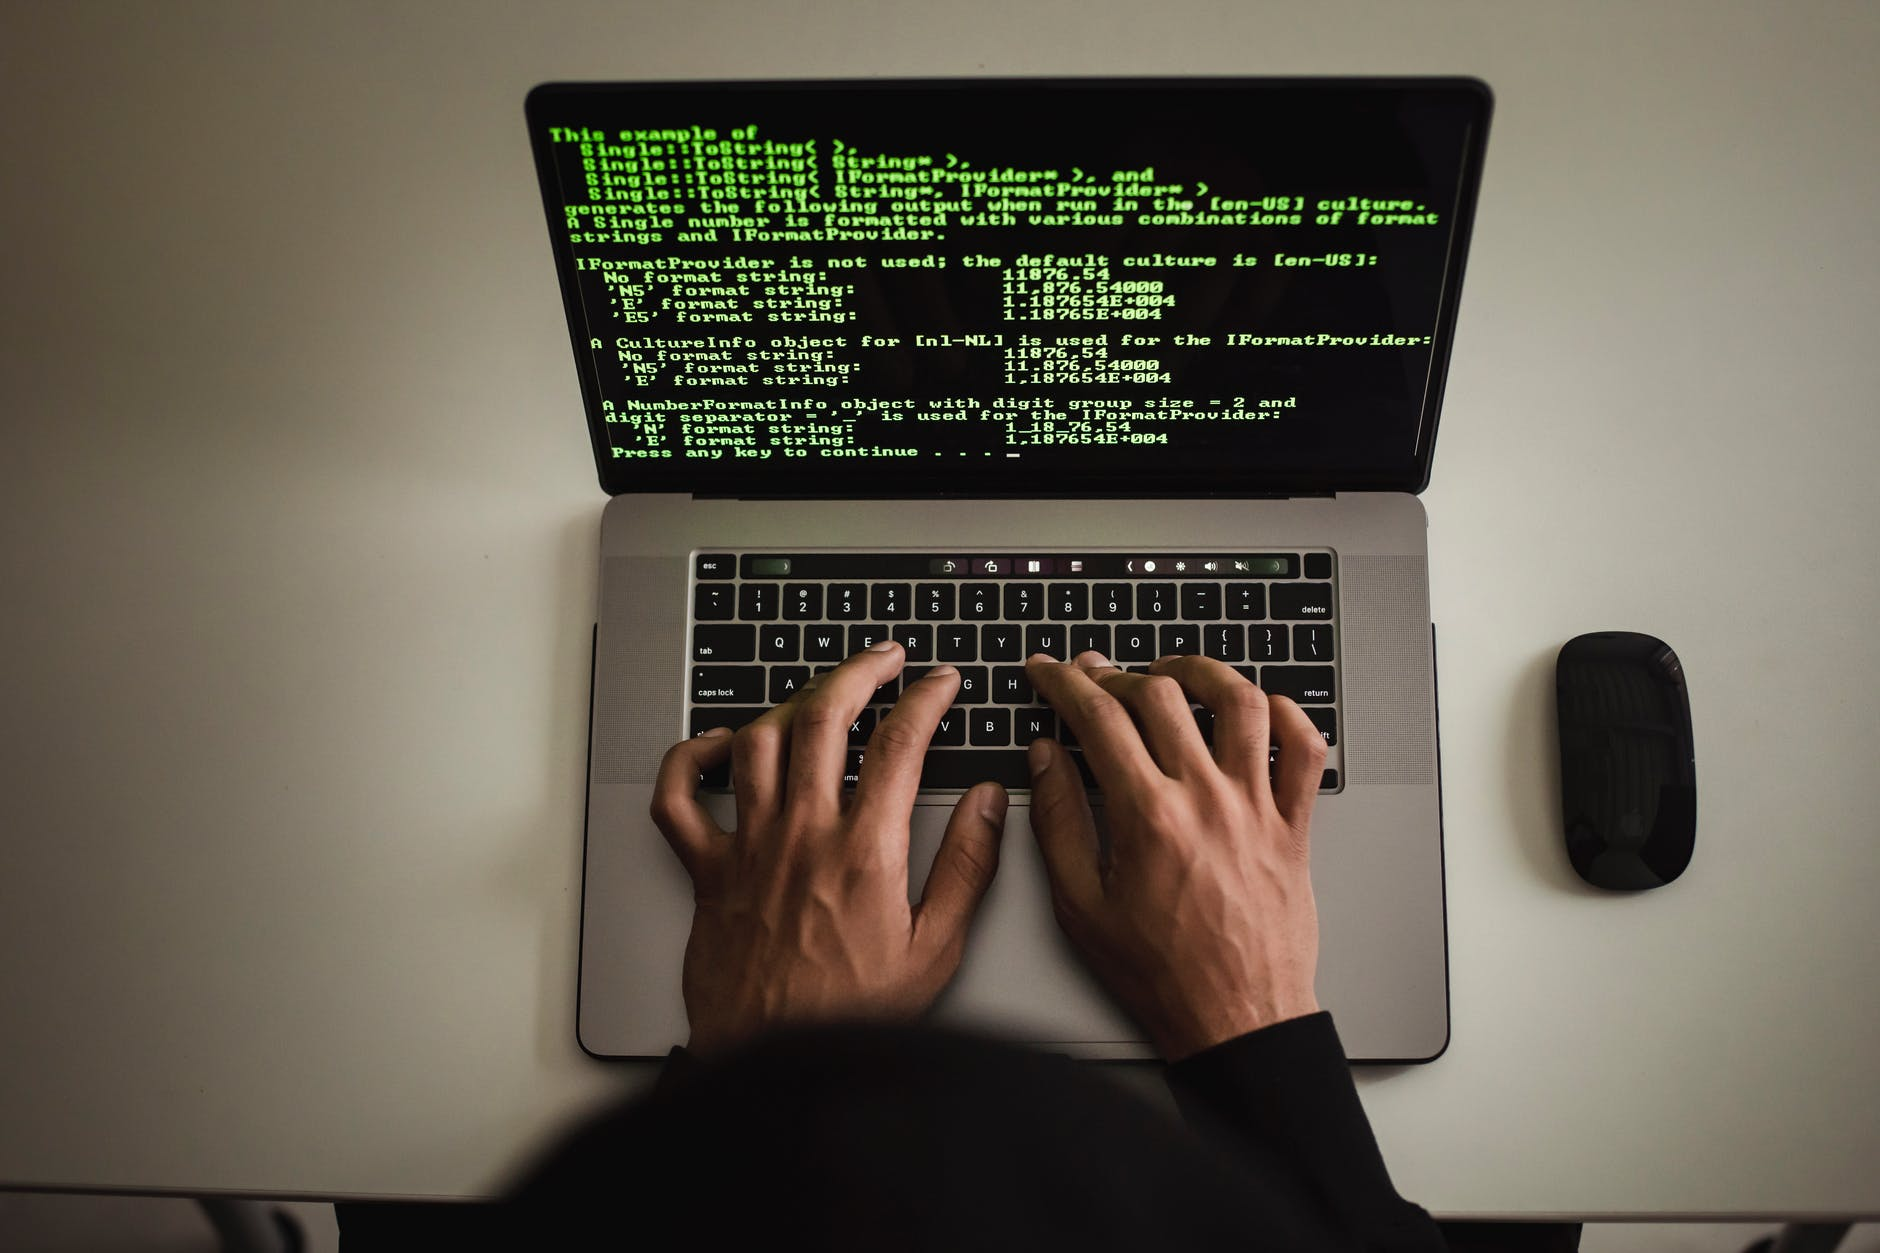 8 Crucial Tips to Protect Your Business from RANSOMWARE ATTACKS